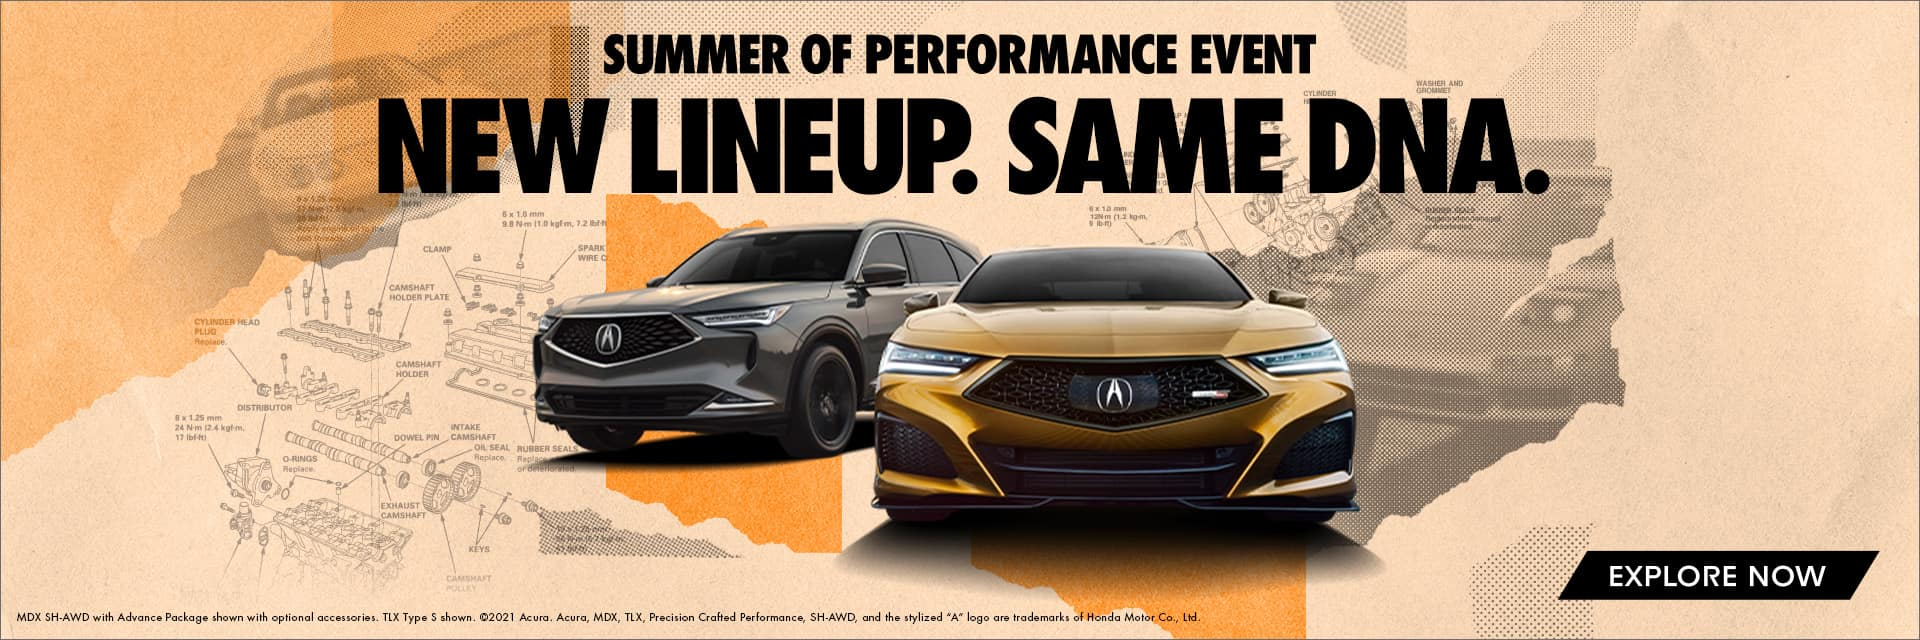 Summer of Performance Event. New Lineup. Same DNA